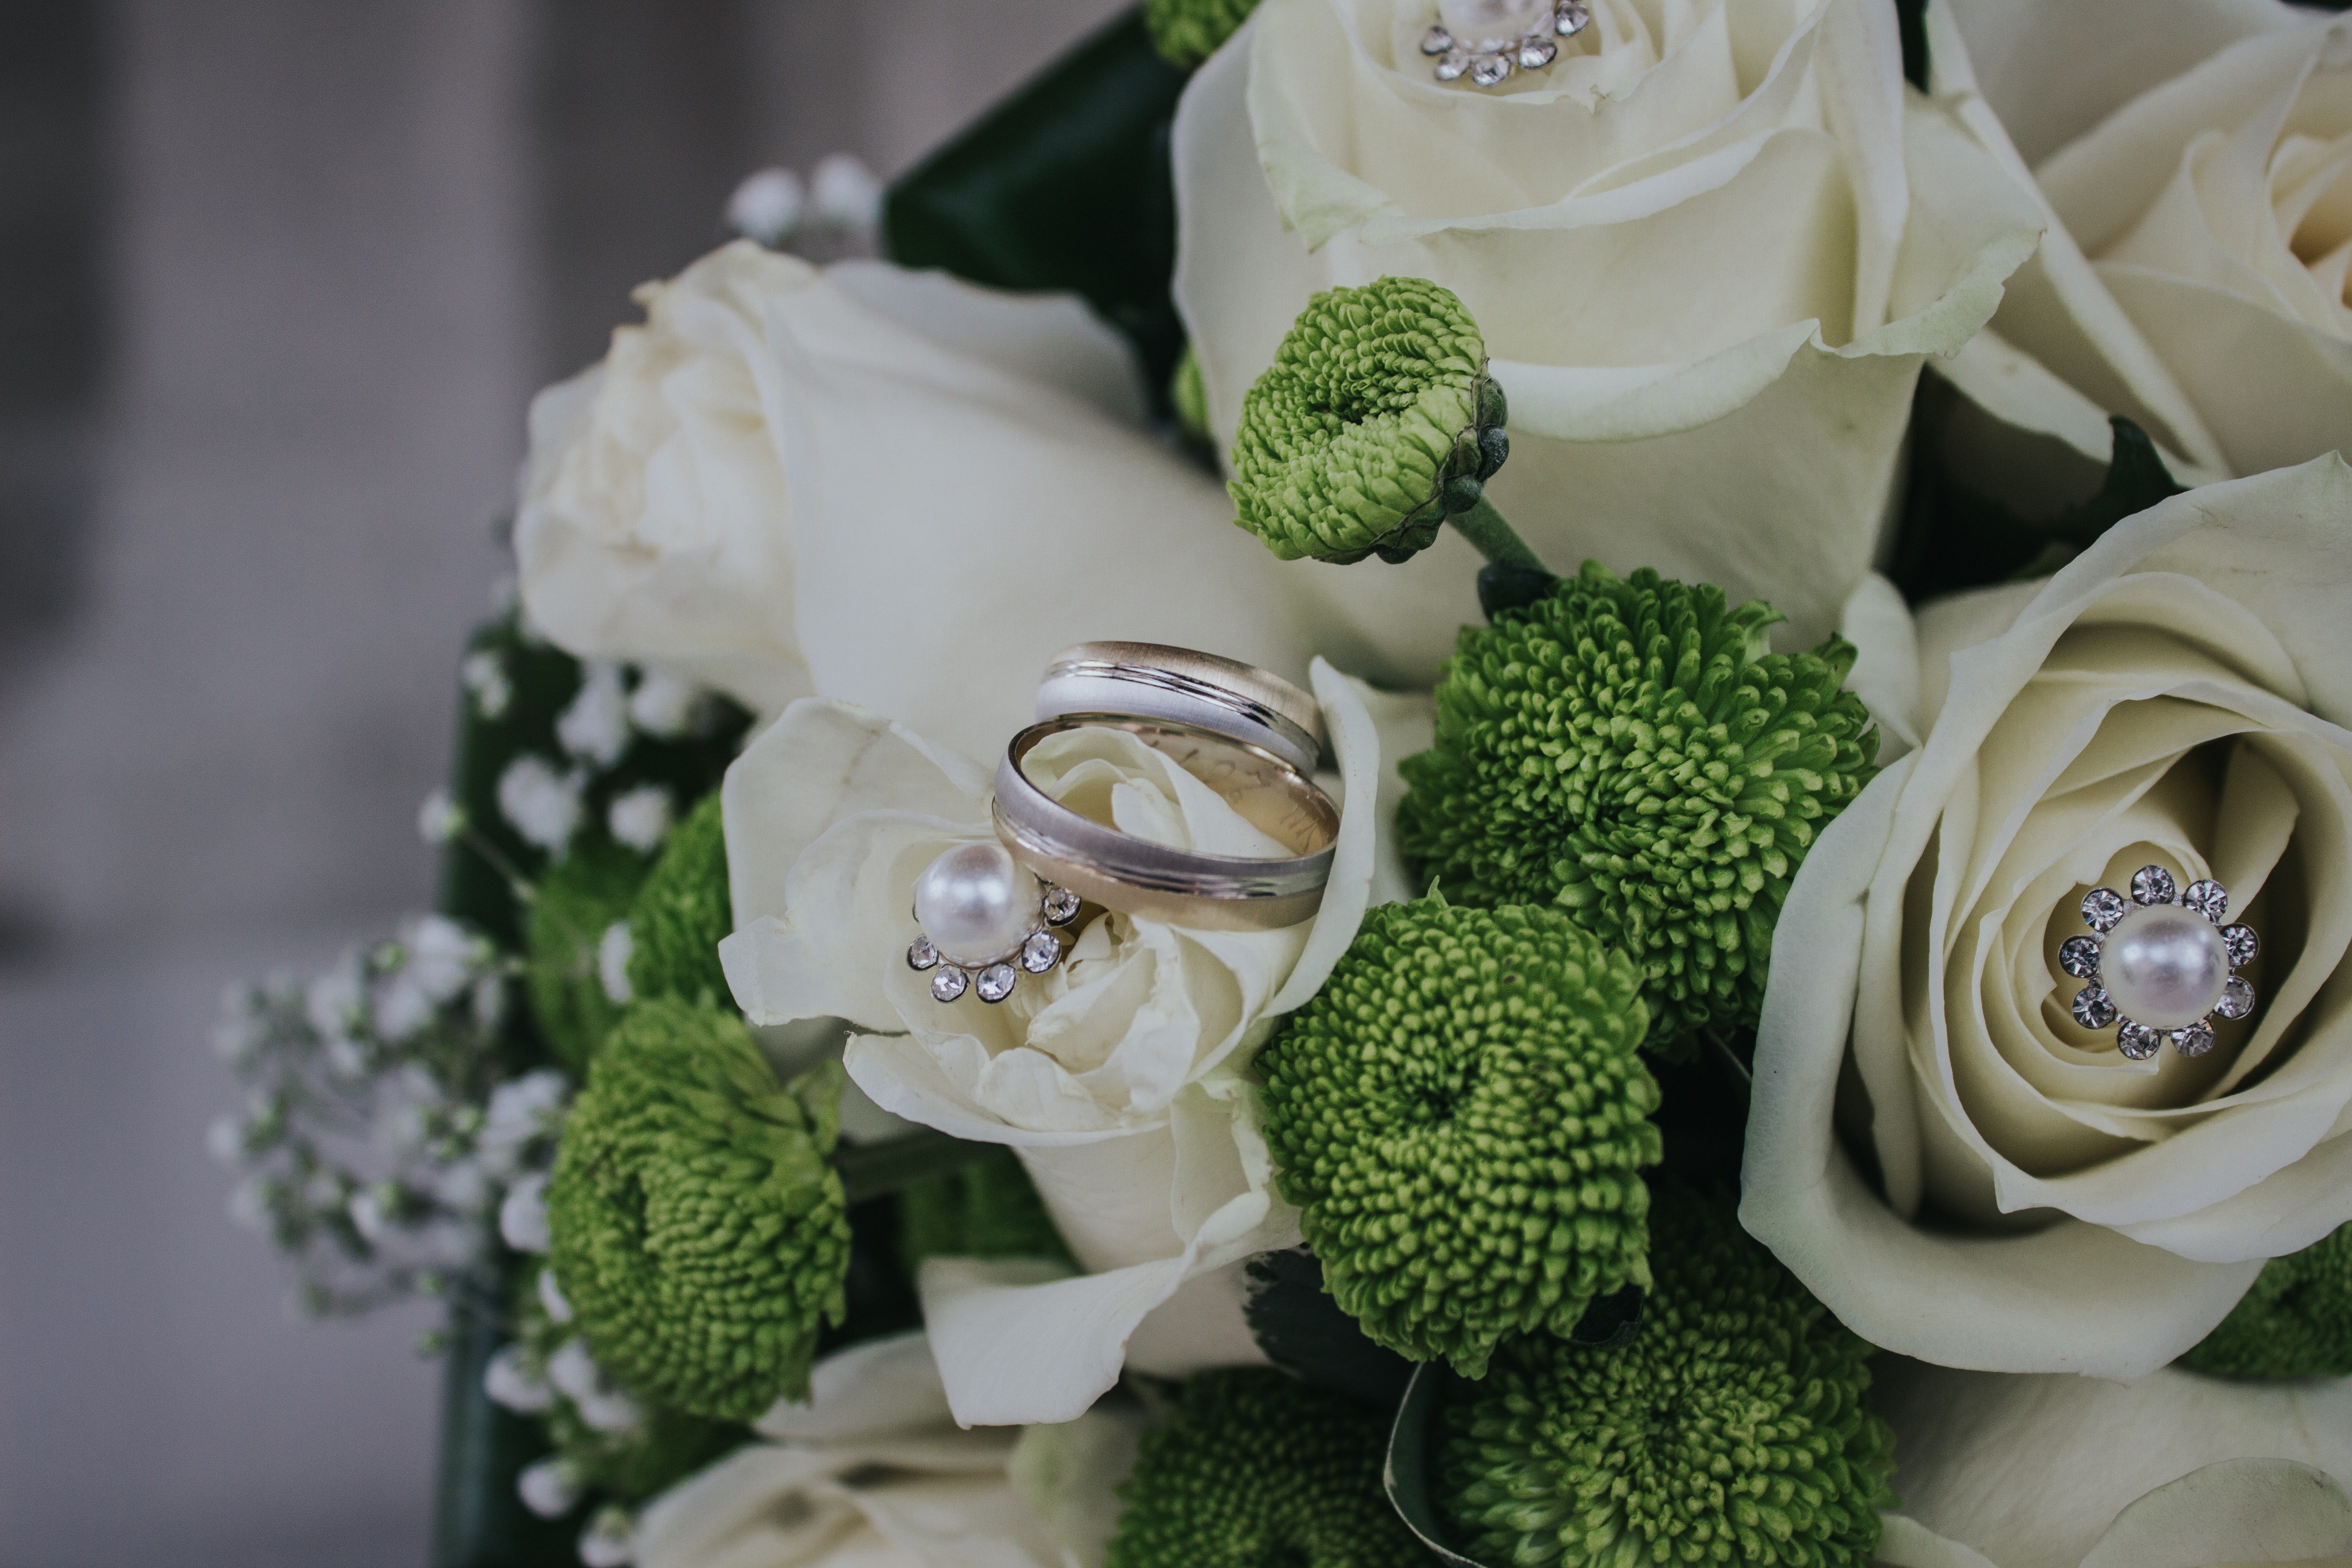 Red and Green Petaled Flowers Bouquet With Silver-colored Ring, Roses, Petals, Wedding bouquet, White, HQ Photo